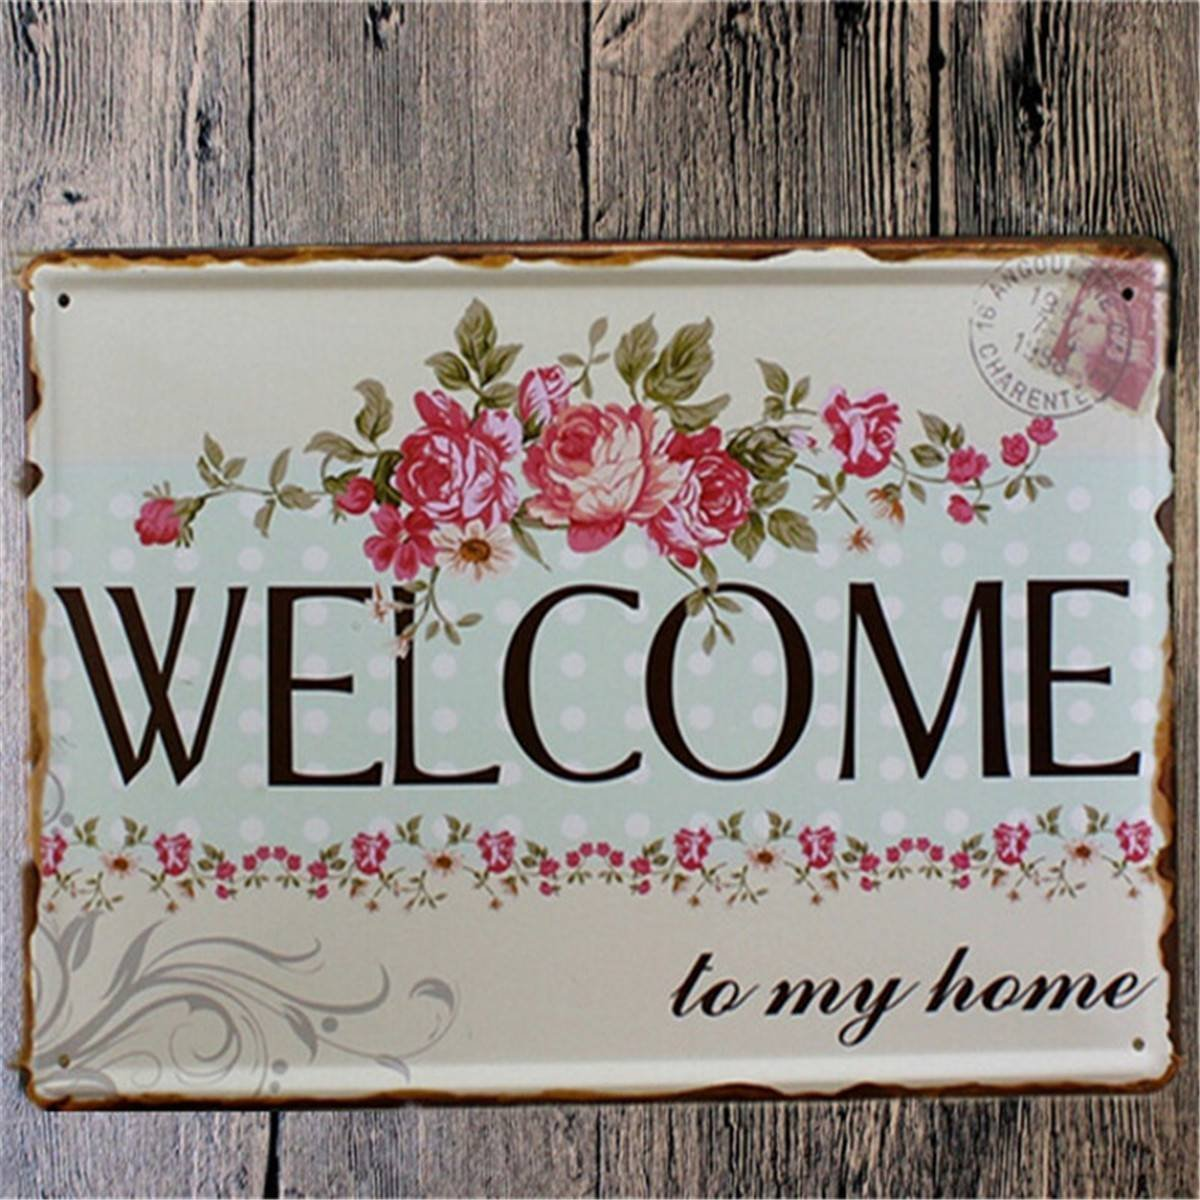 Welcome Home Metal Shabby Chic Vintage Sign Wall Decor